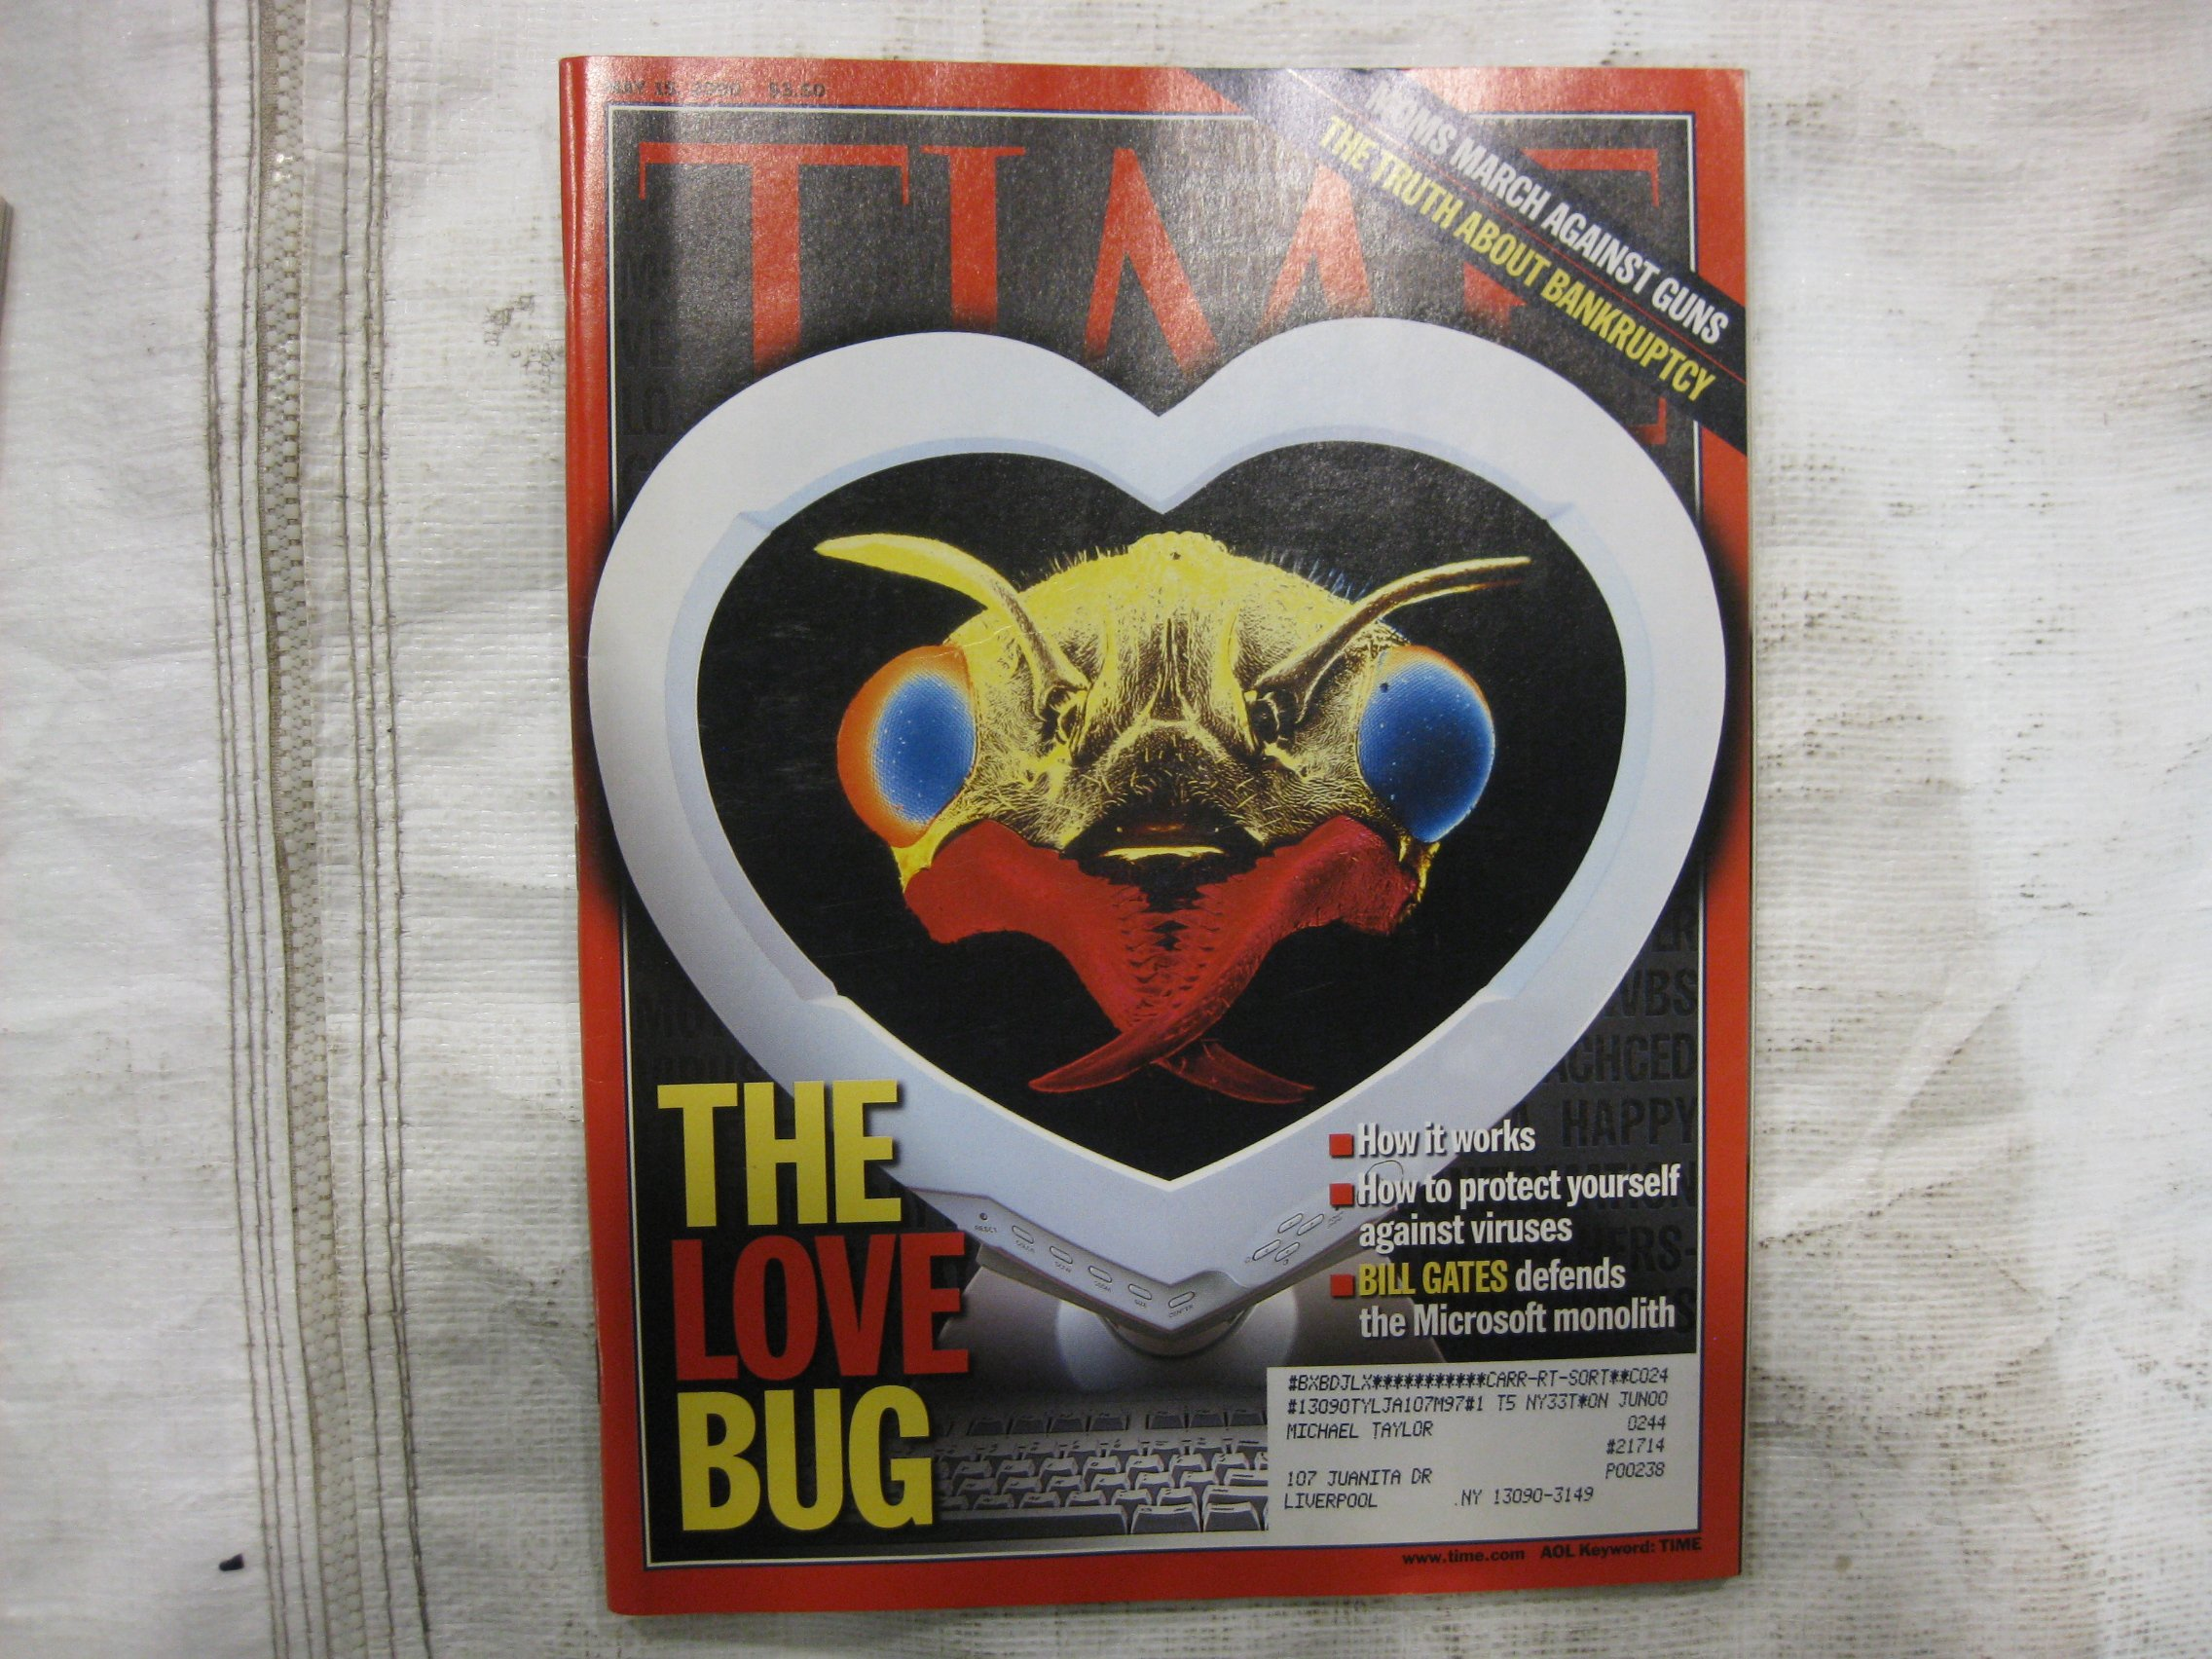 Download Time Magazine May 15 2000 The Love Bug: How to Get Rid of viruses * Moms March Against Guns * The Truth About Bankrupcy PDF